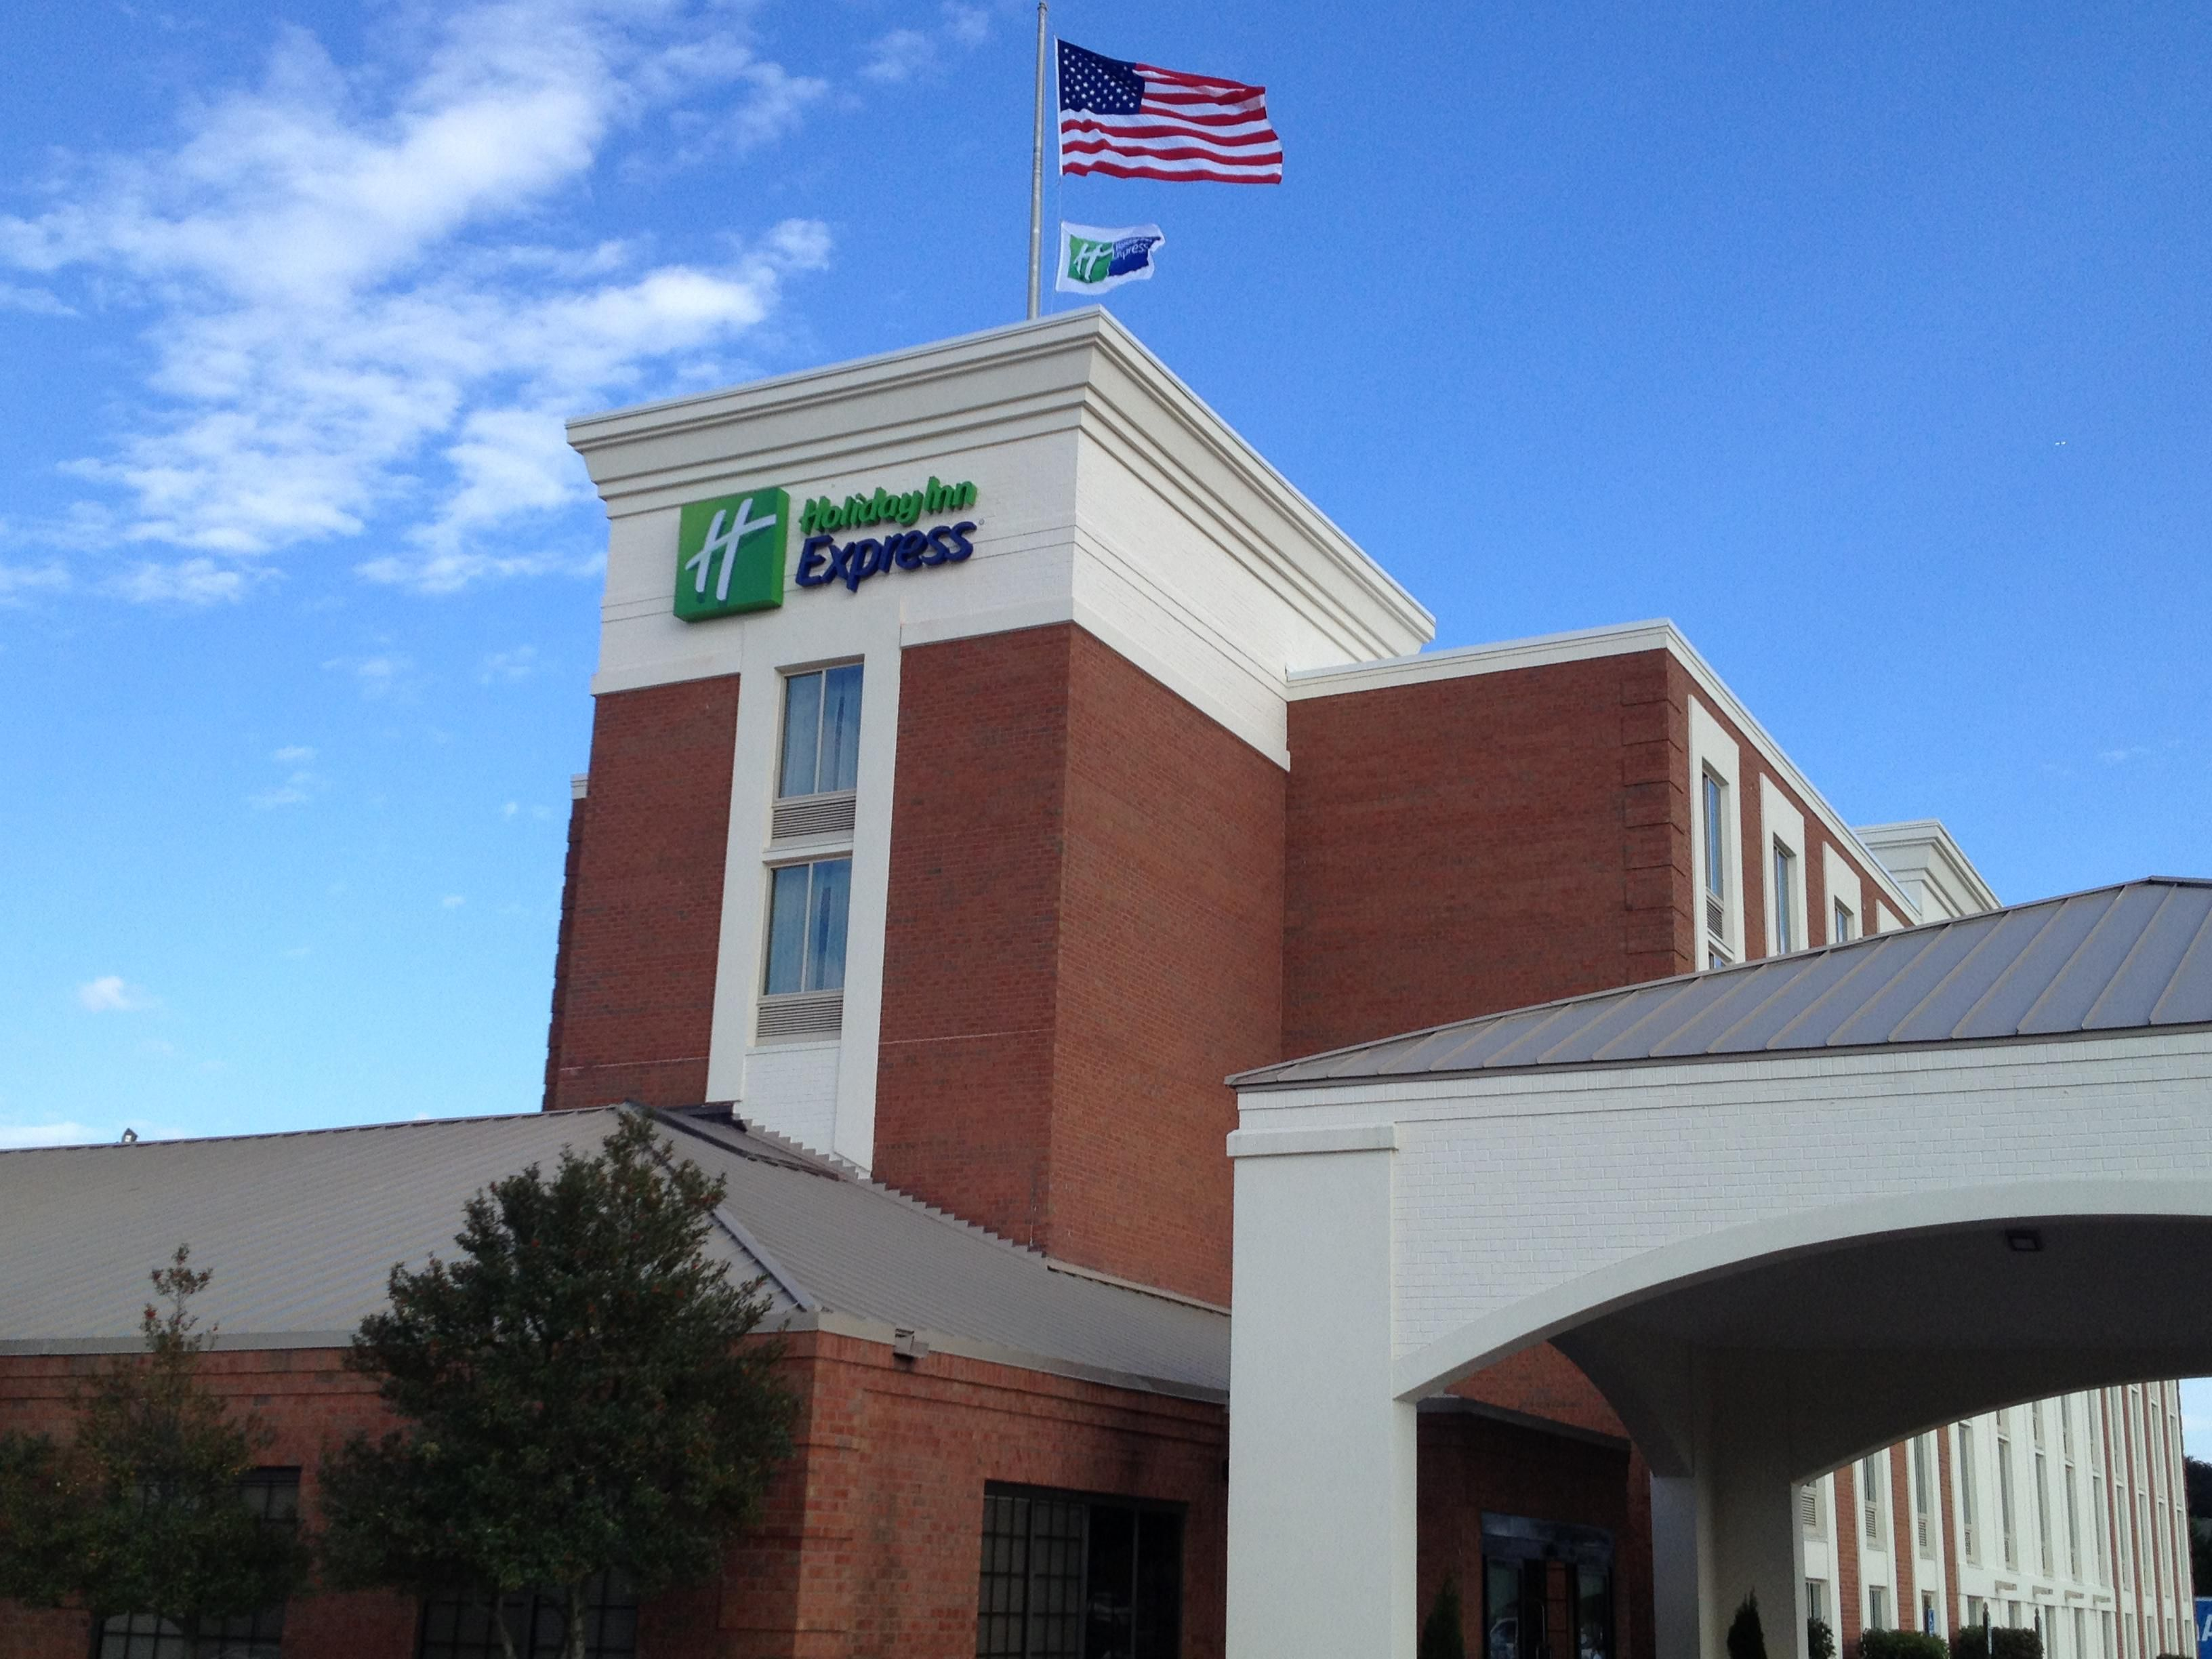 Welcome to the Holiday Inn Express SouthPoint, Fredericksburg